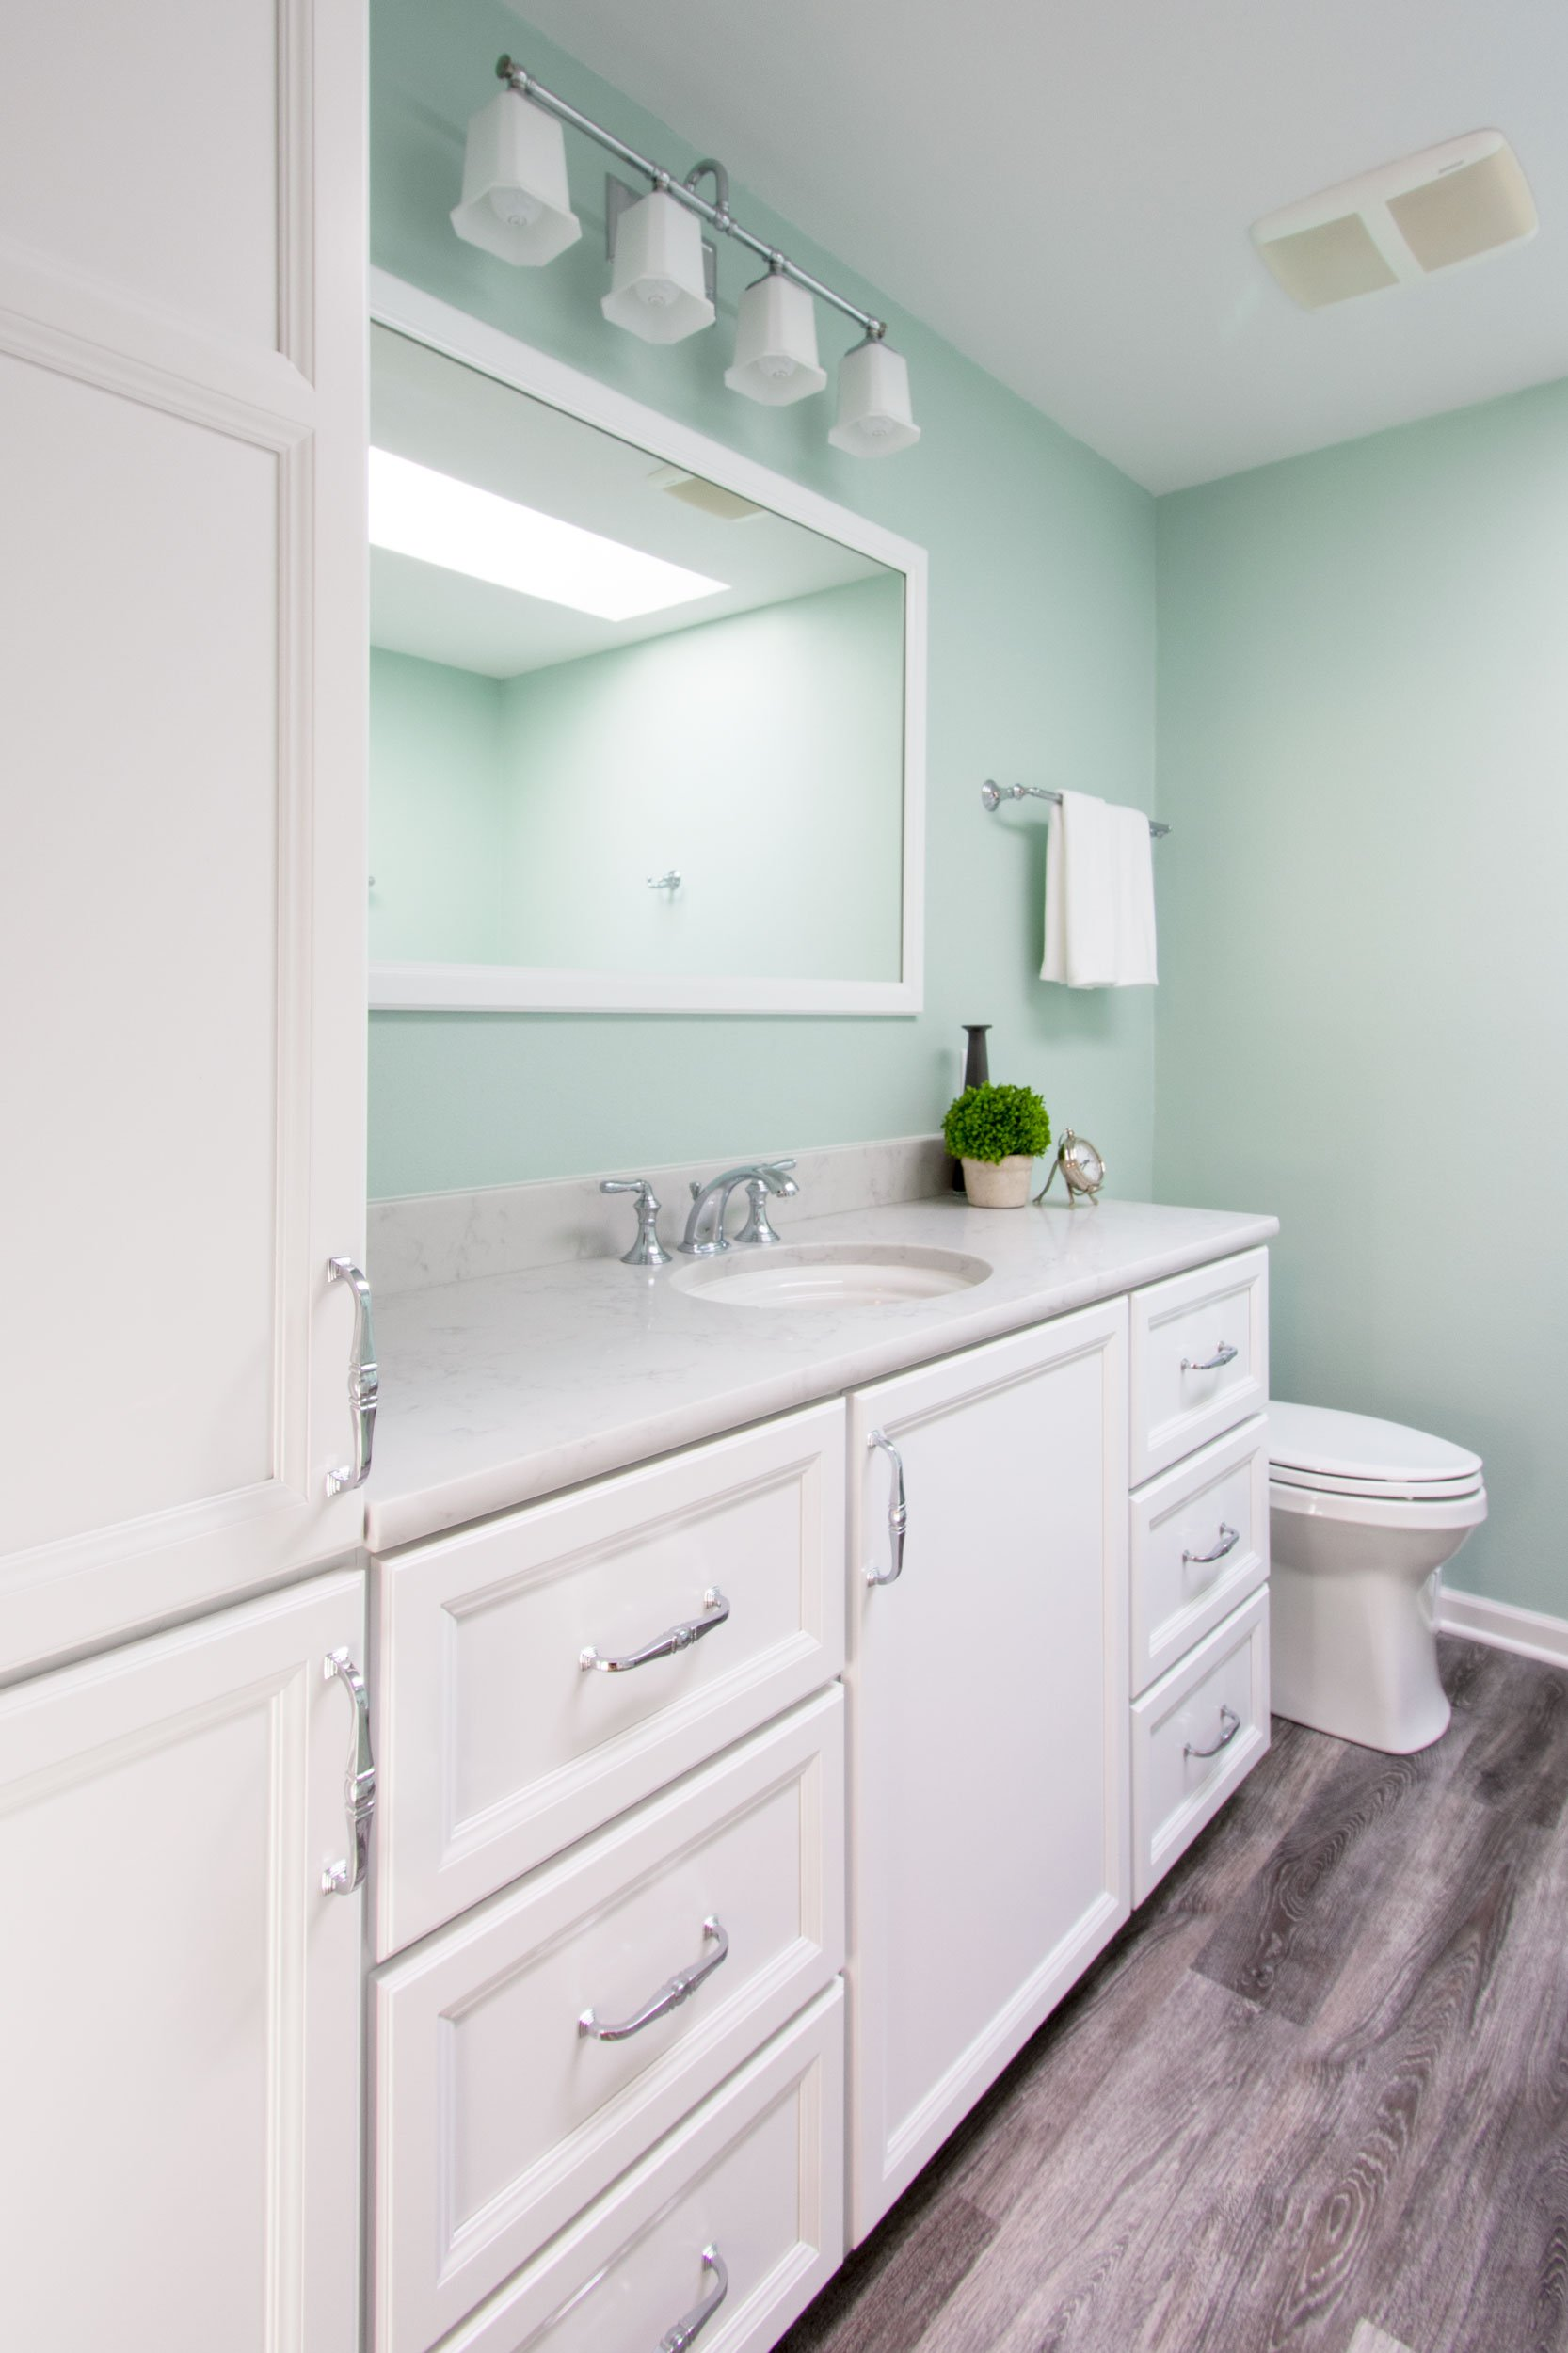 Bright and airy master bathroom with white vanity and linen cabinet